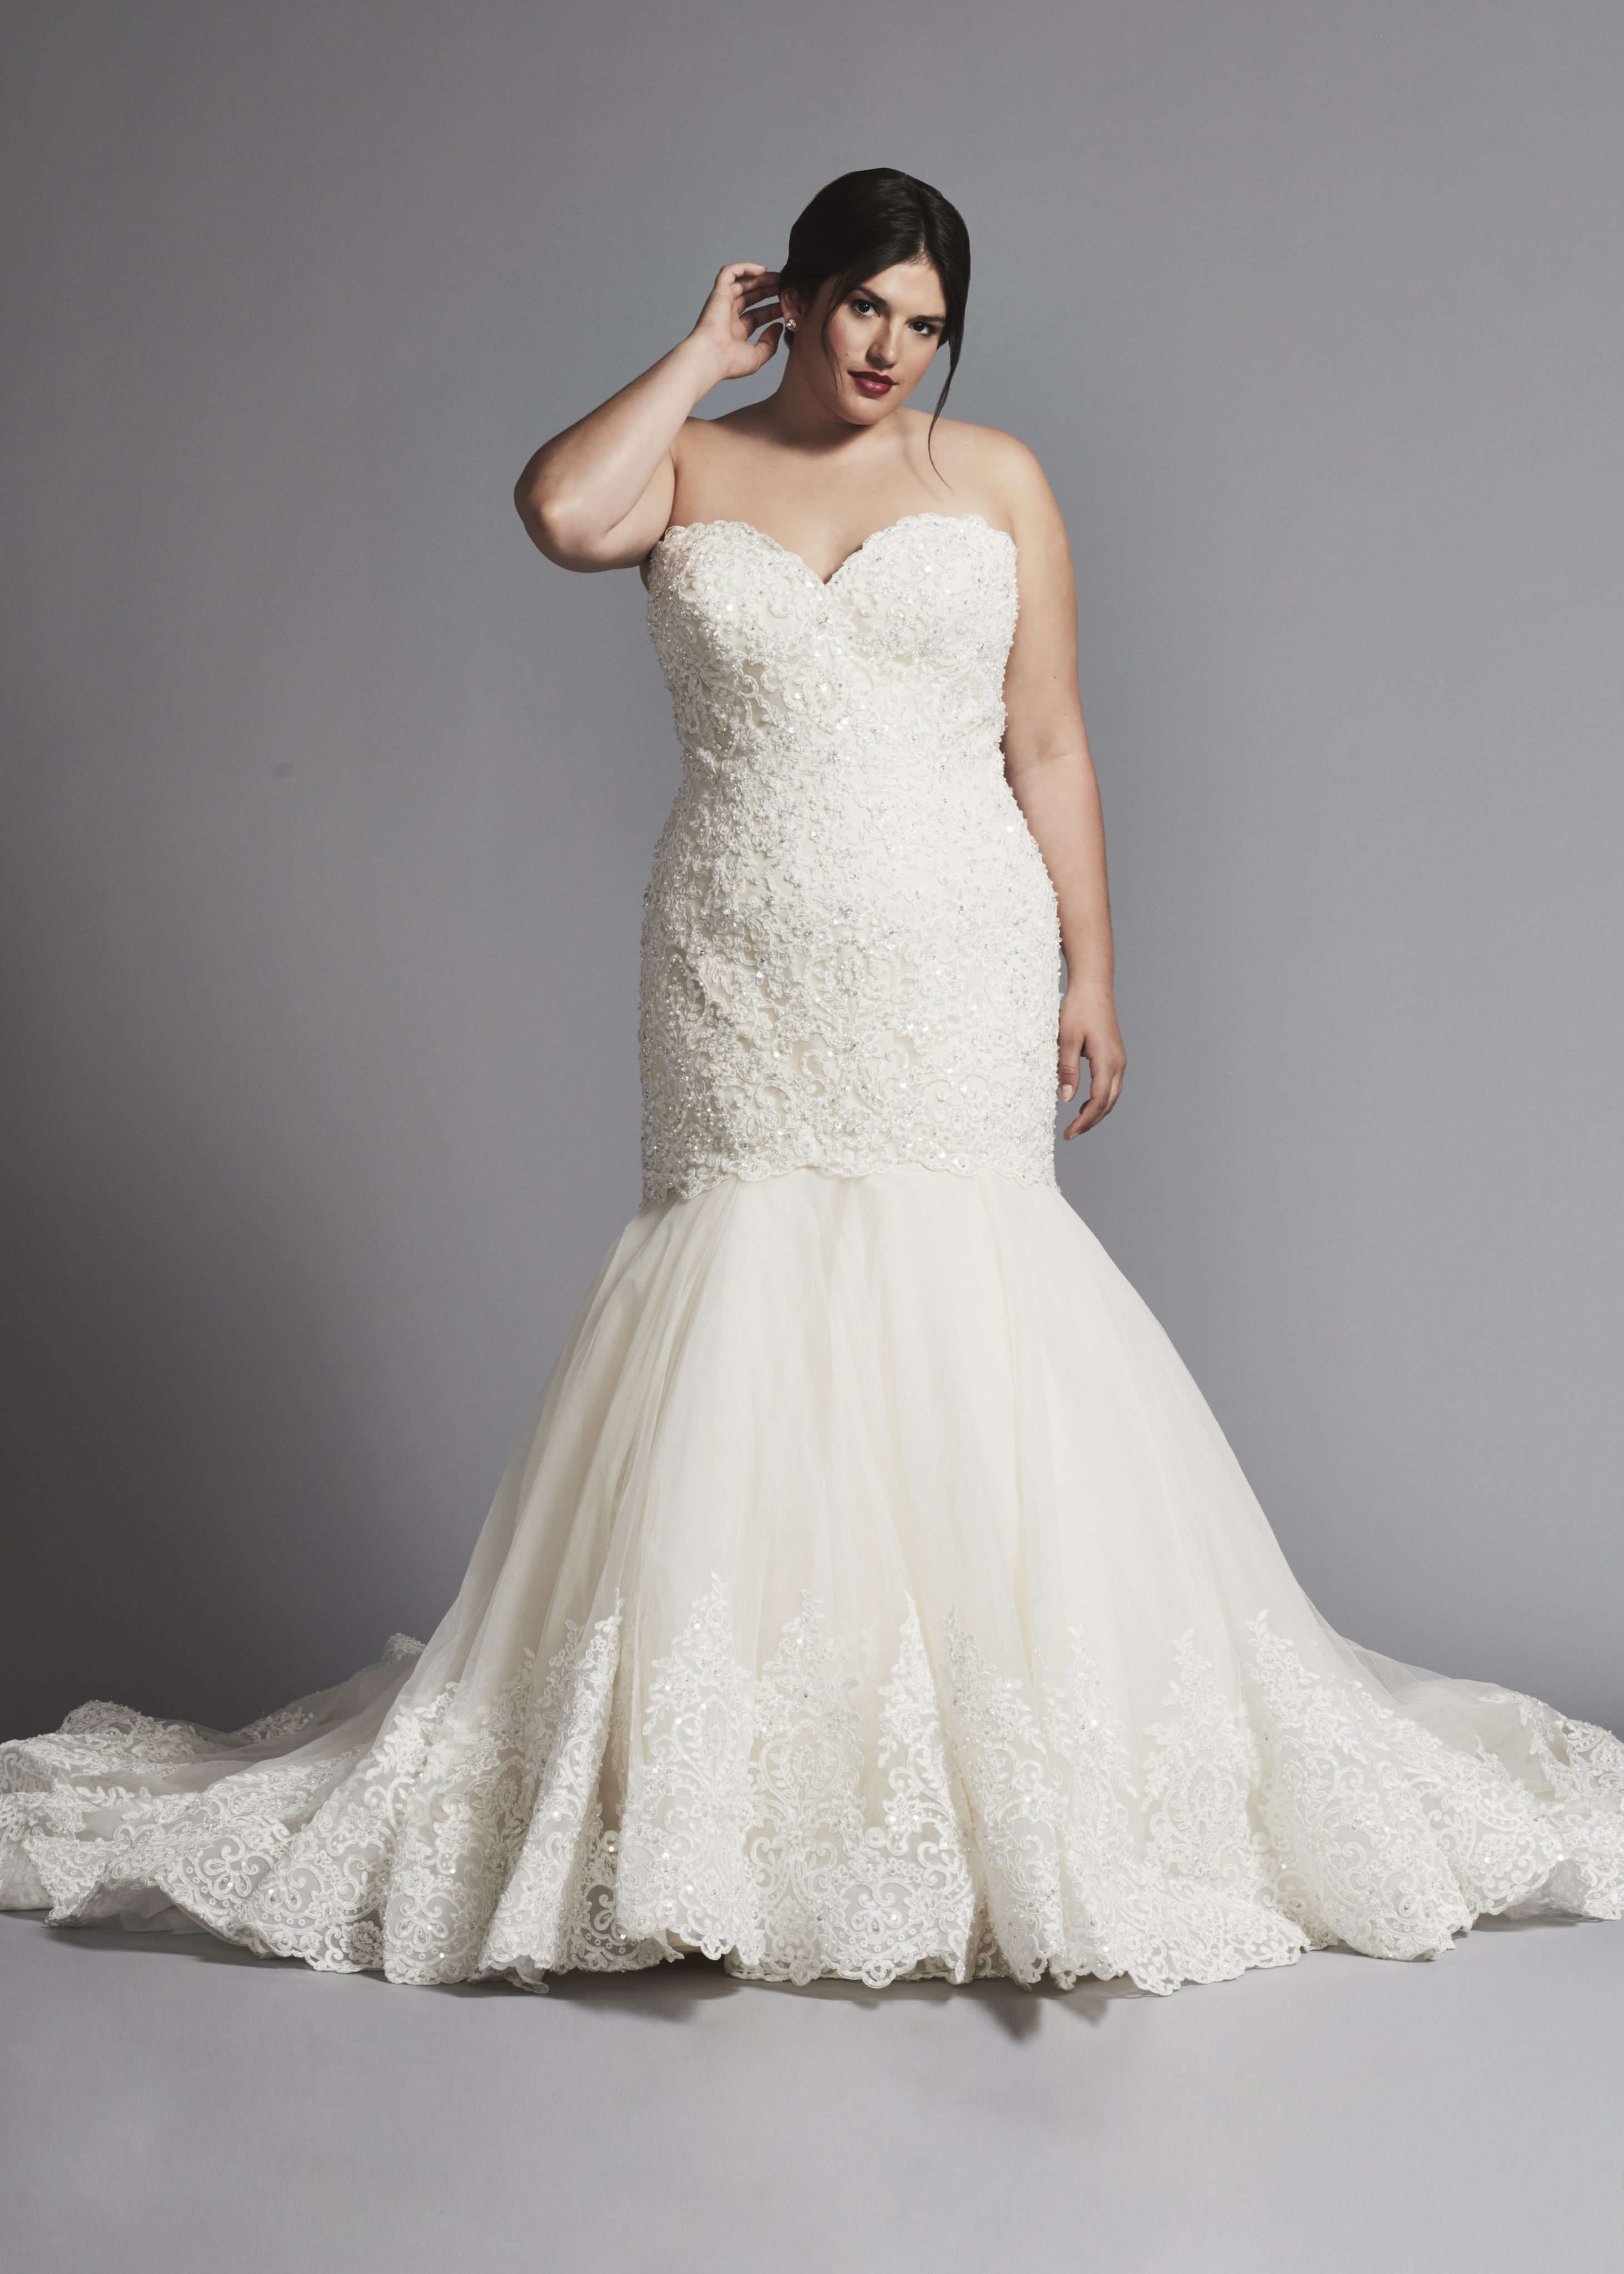 mermaid wedding dress with beaded lace bodice and tulle skirt | kleinfeld bridal